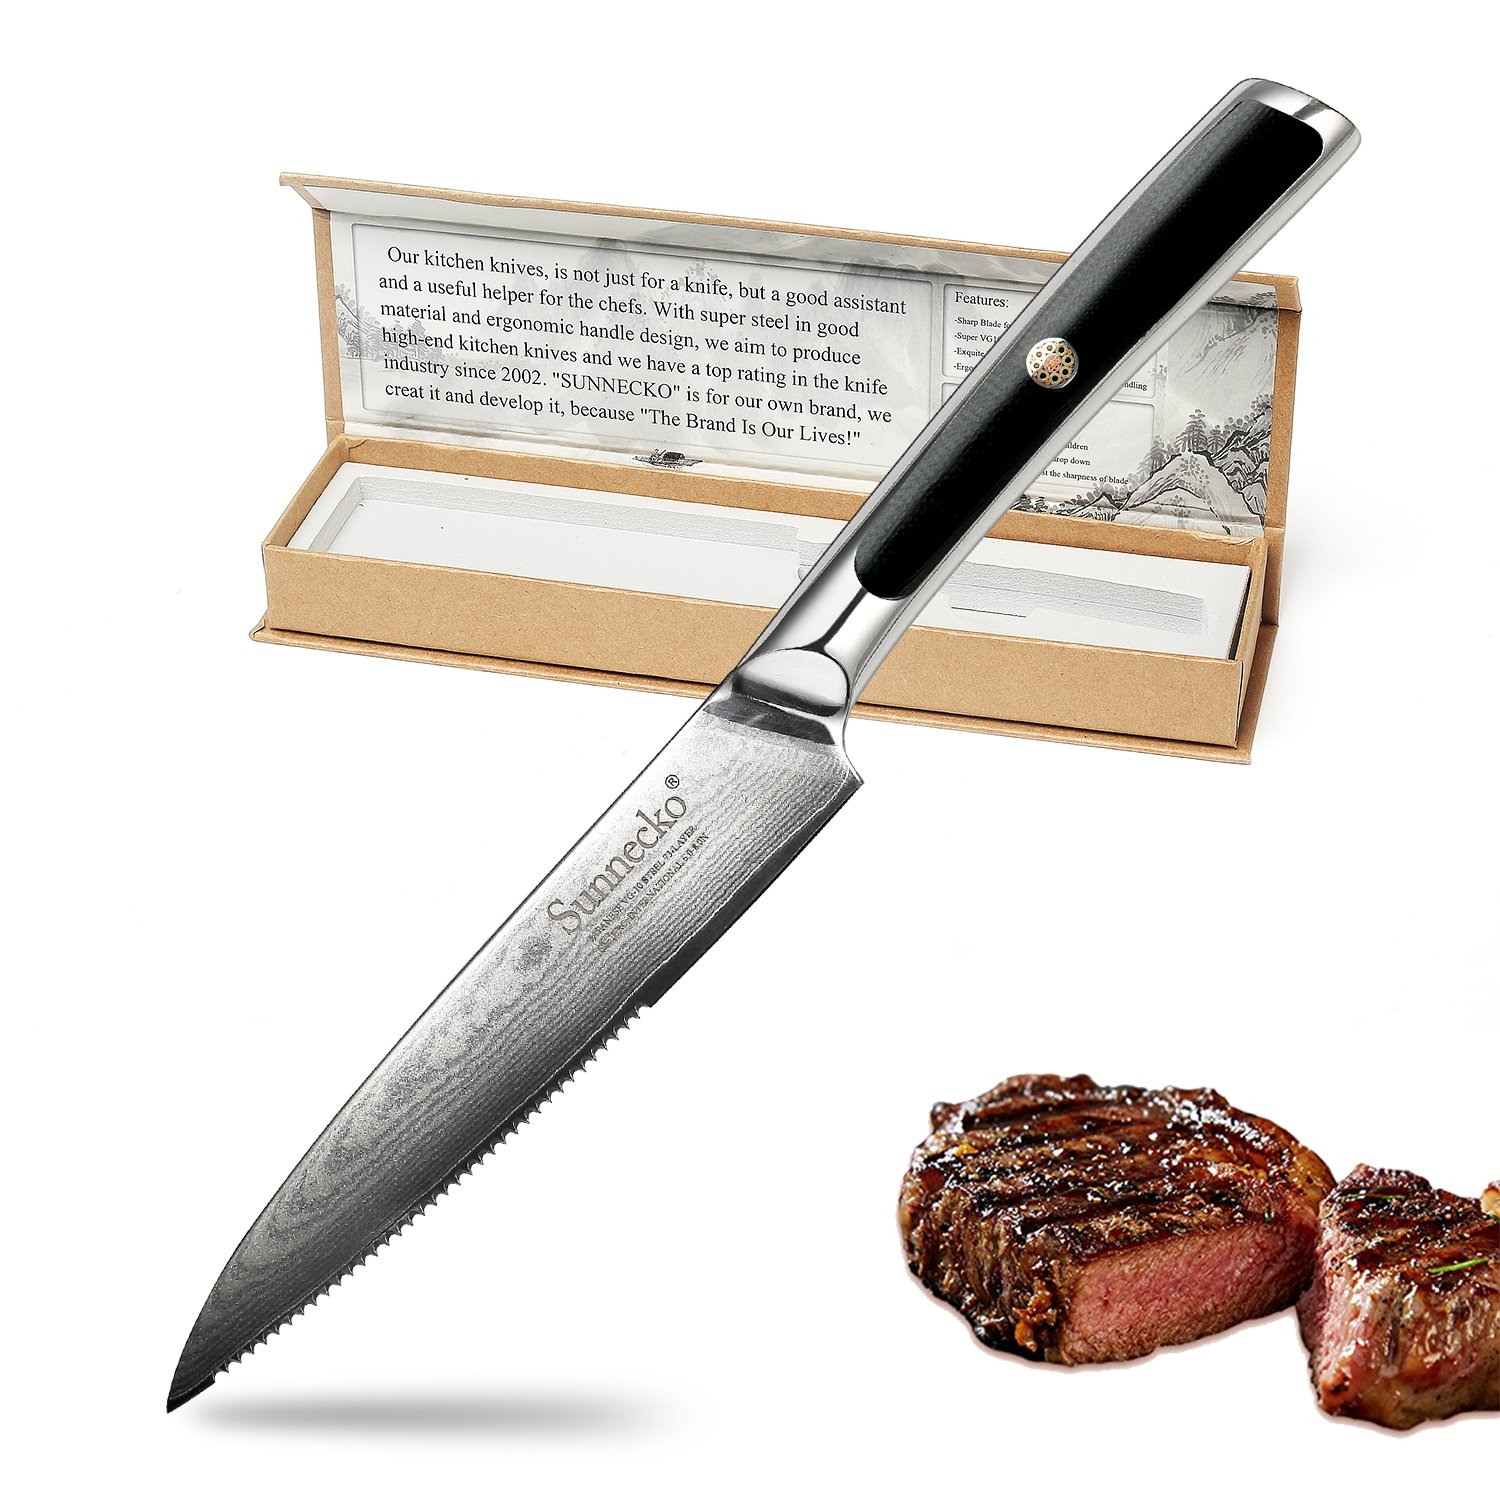 Chef Knife-5inch Damascus Kitchen Knife -Best Quality Japanese VG10 Super Steel 73 Layer High Carbon Stainless Steel Razor-Sharp Superb Edge Retention Steak Knives by SUNNECKO.